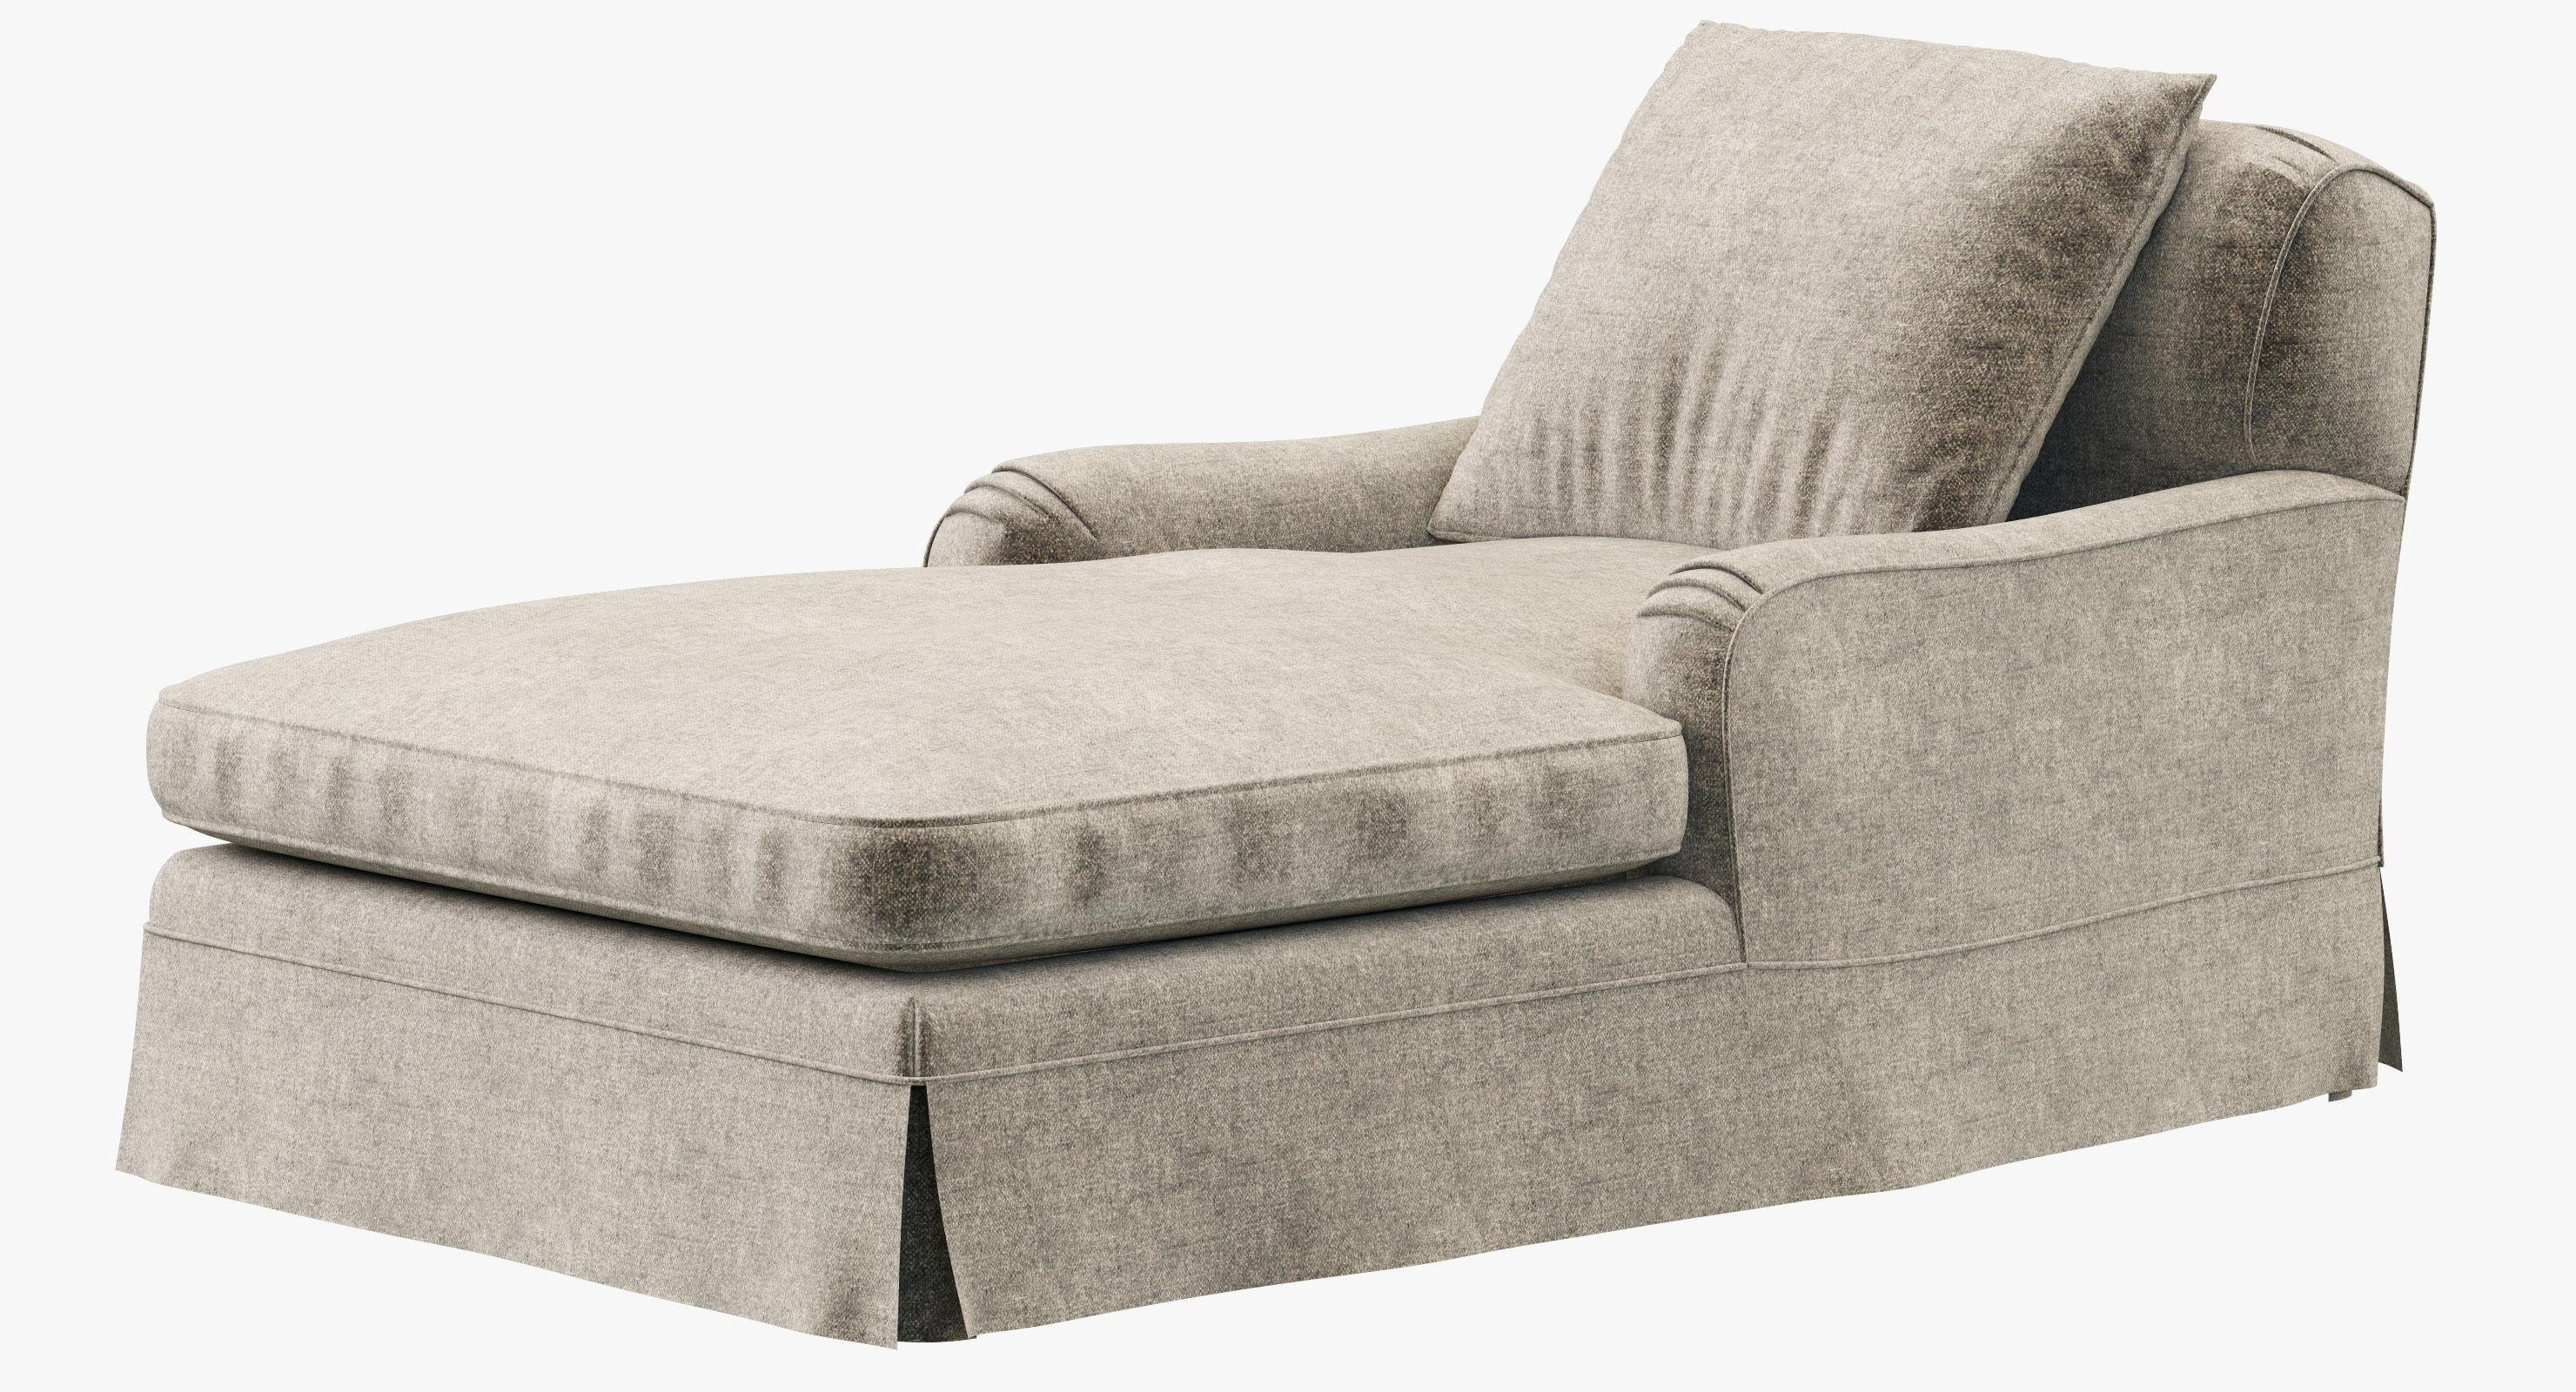 Restoration Hardware Belgian Classic Roll Arm Slipcovered Chaise Intended For Slipcovered Chaises (Image 14 of 20)